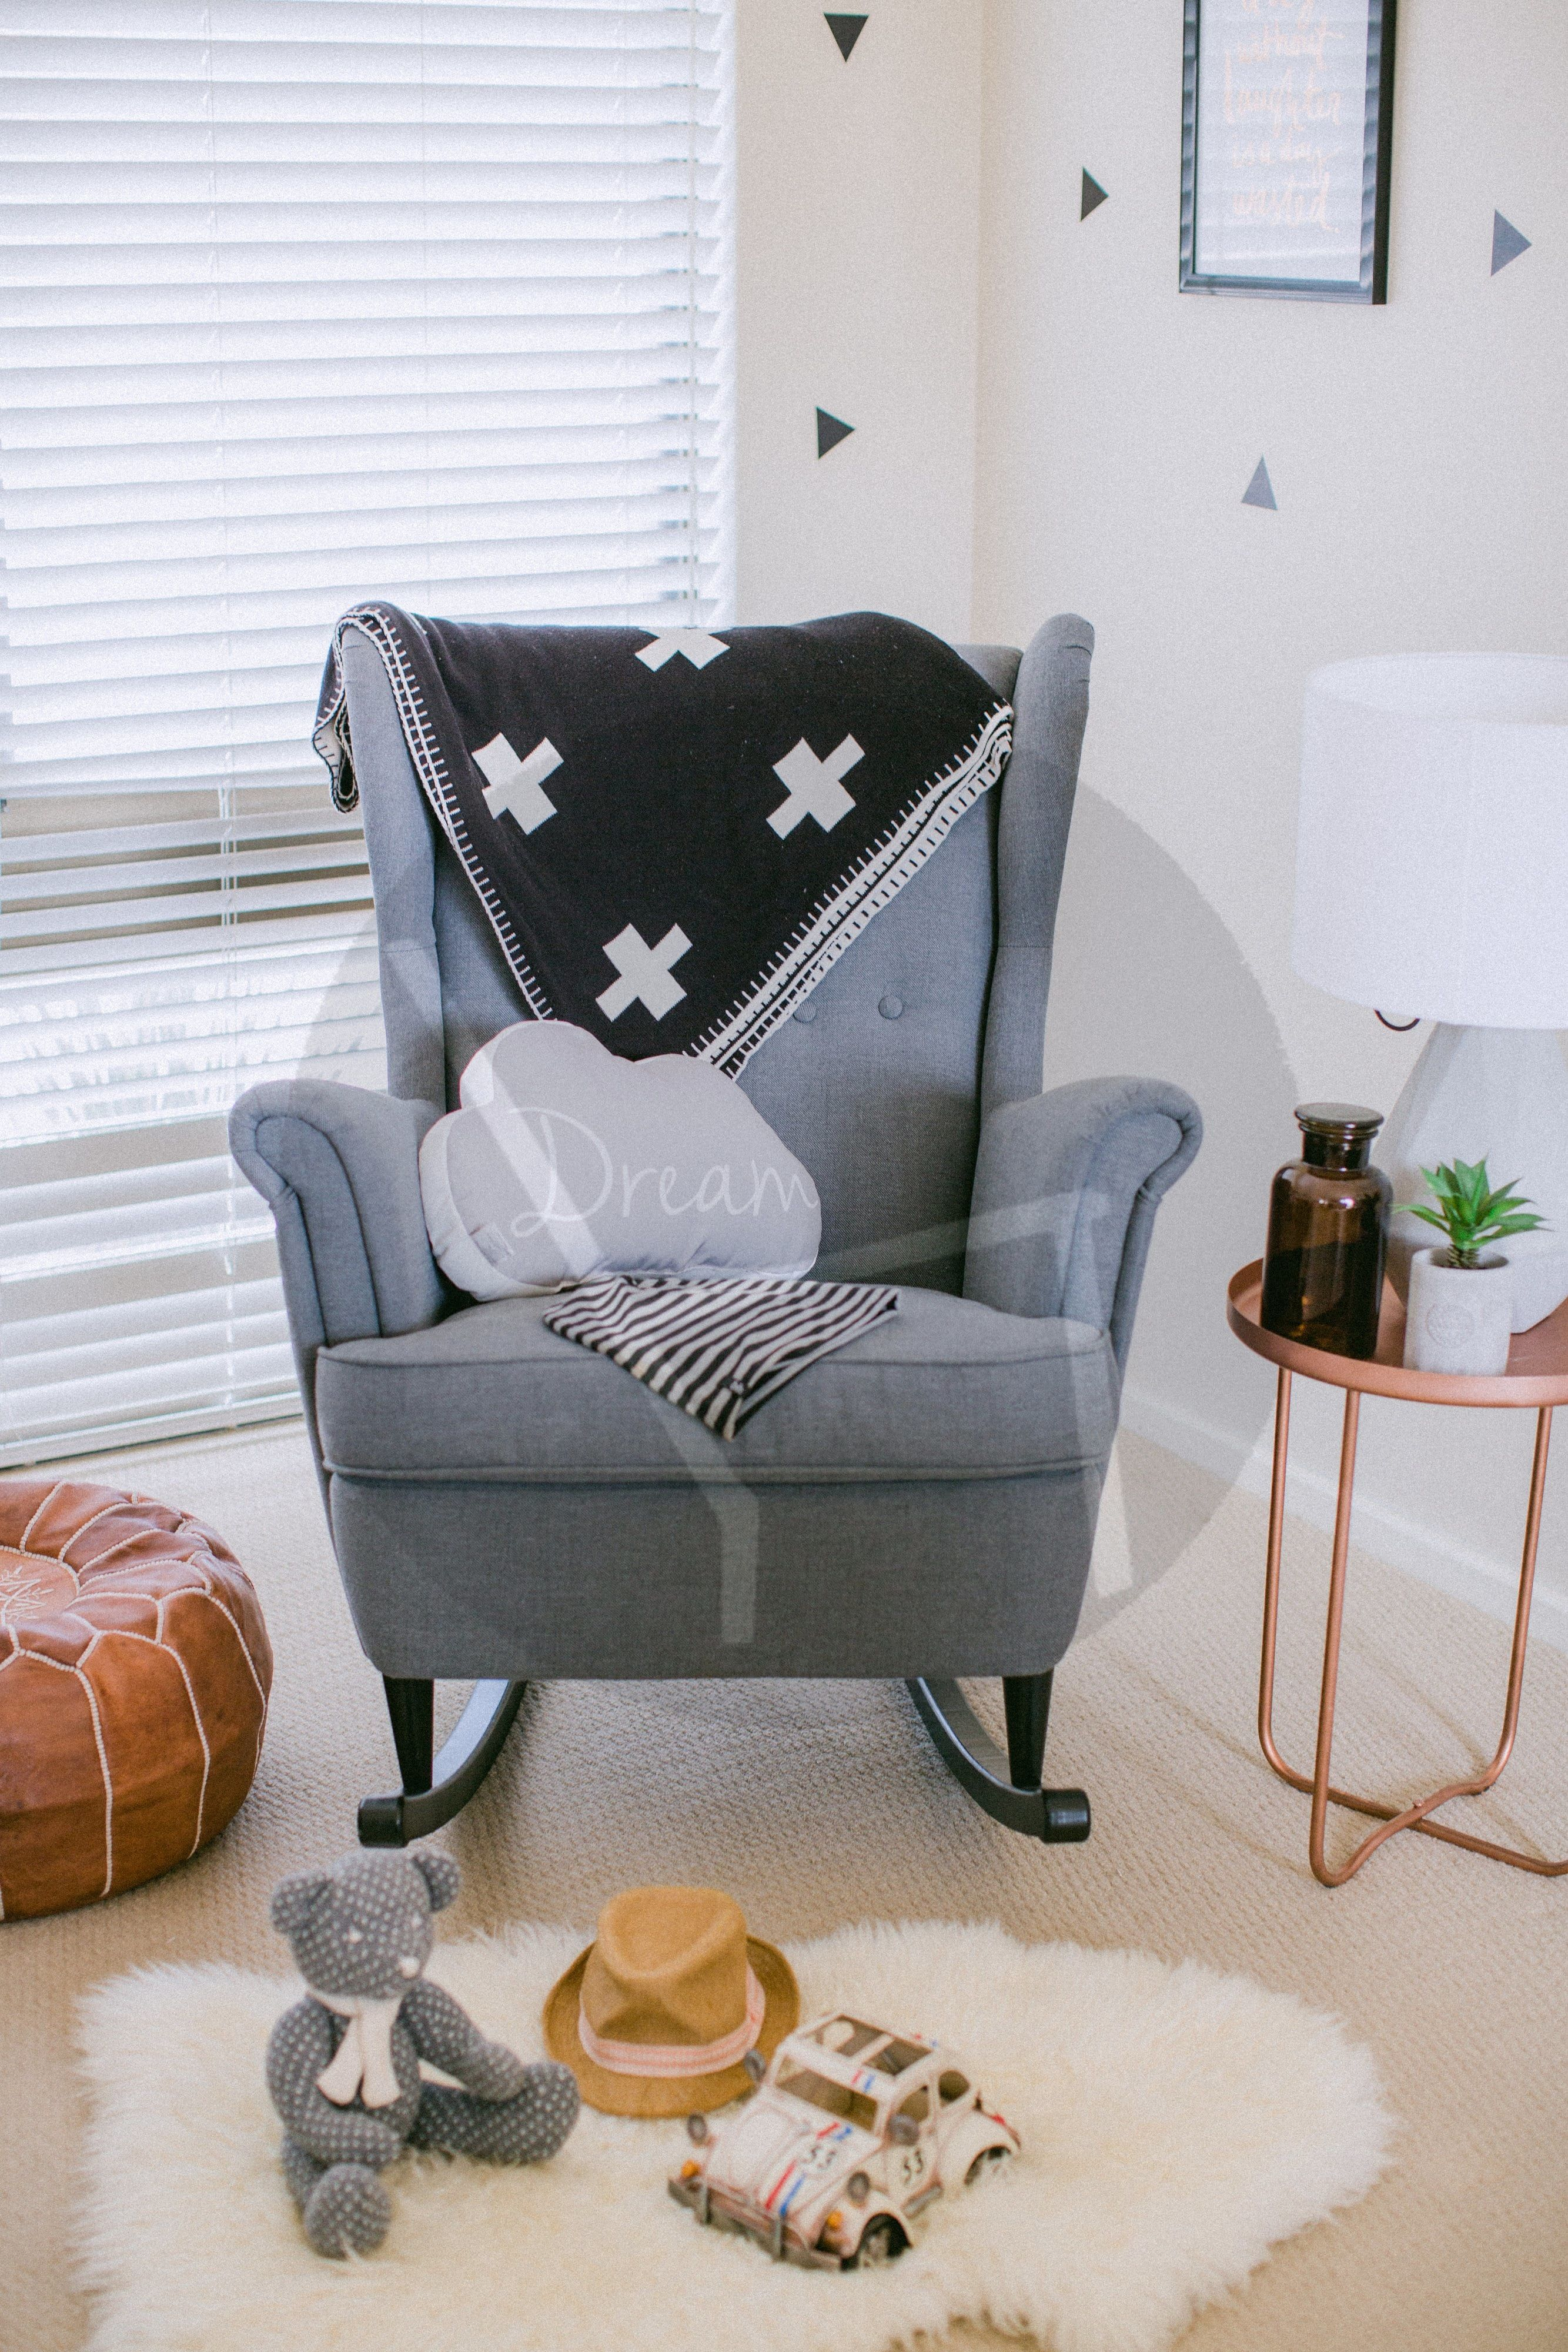 Nursery Chair Australia Captain Chairs For Lund Boats This Handcrafted Kit Will Convert The Beautiful Ikea